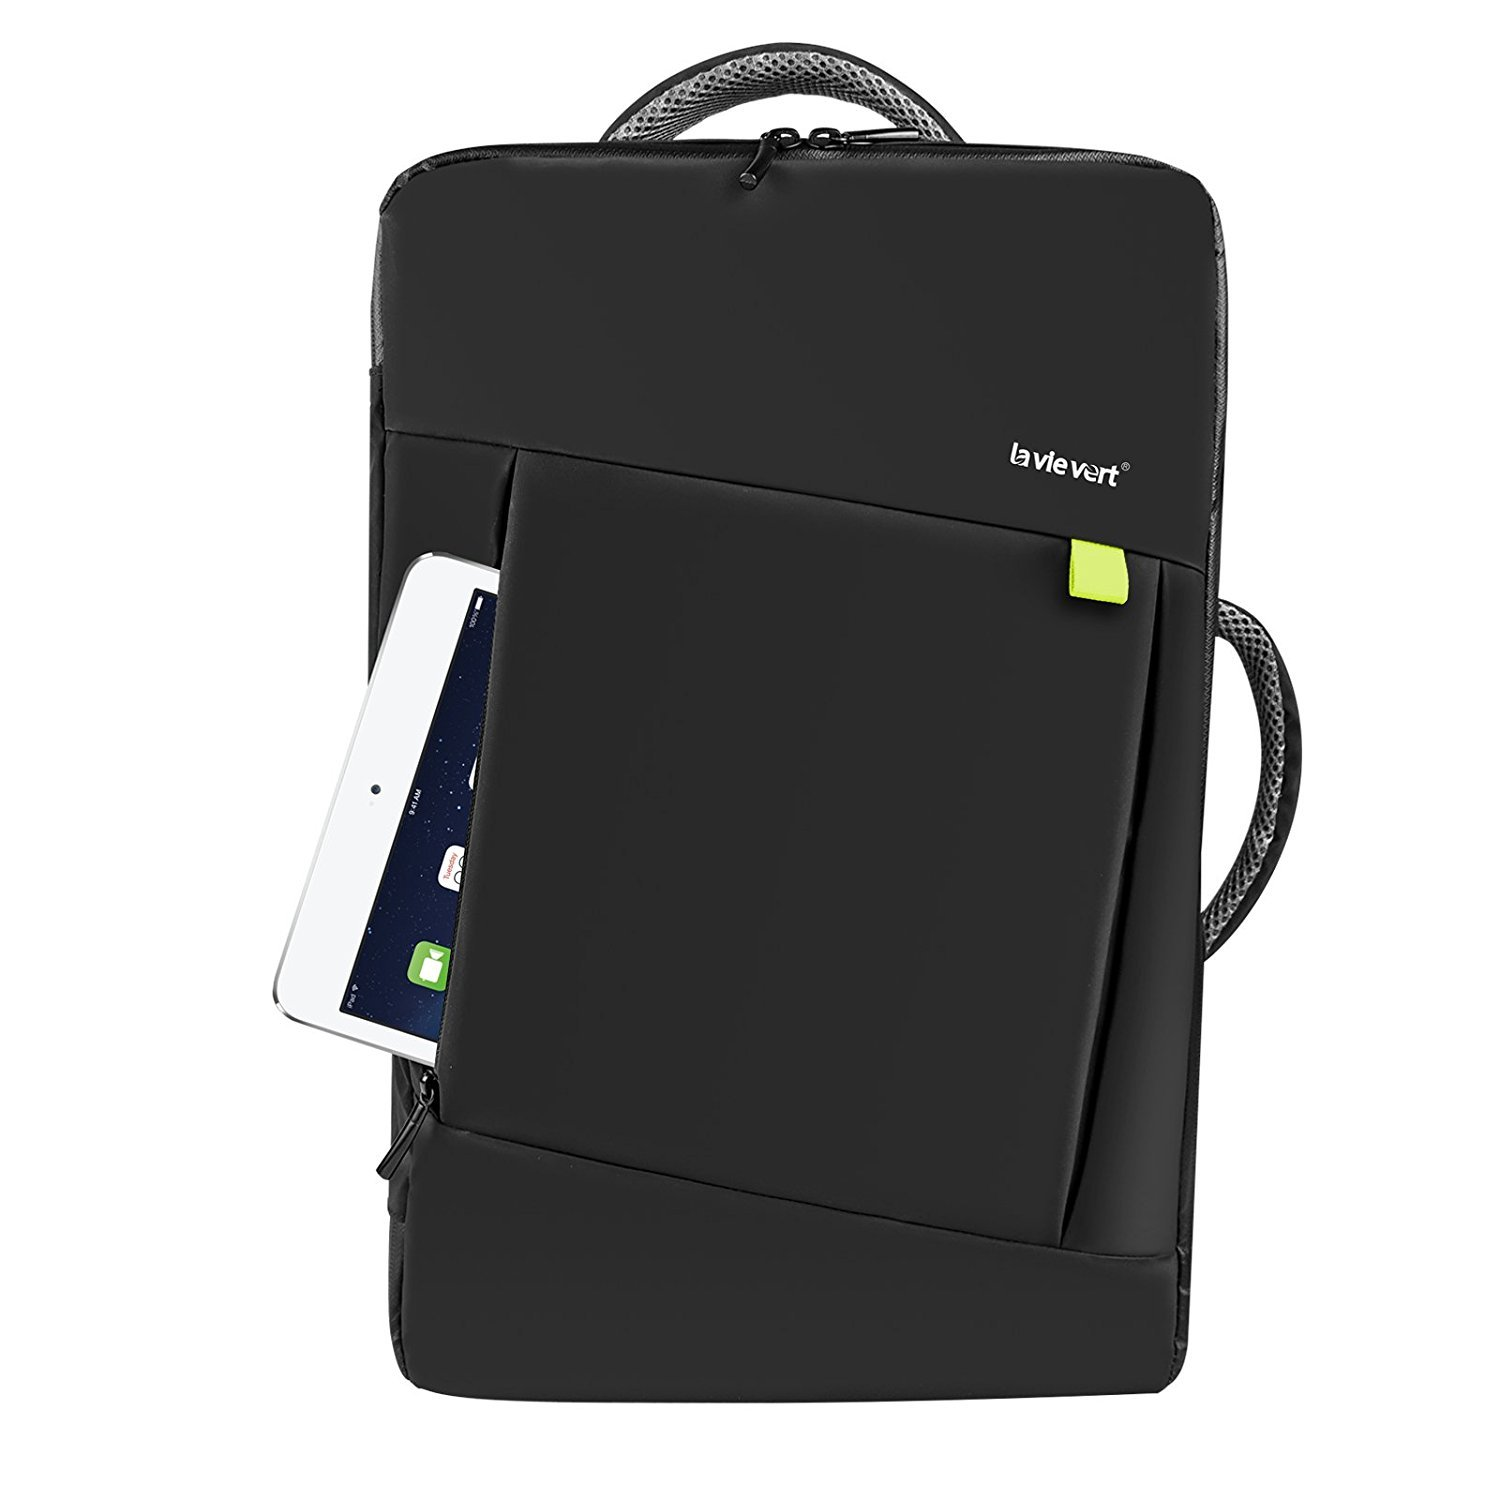 ... Backpack Laptop Convertible Briefcase Tote Bag Business Travel Luggage  Carrier School Knapsack For Macbook Notebook Tablet PC Ultrabook Up to 17  Inch ebed2f971b16c